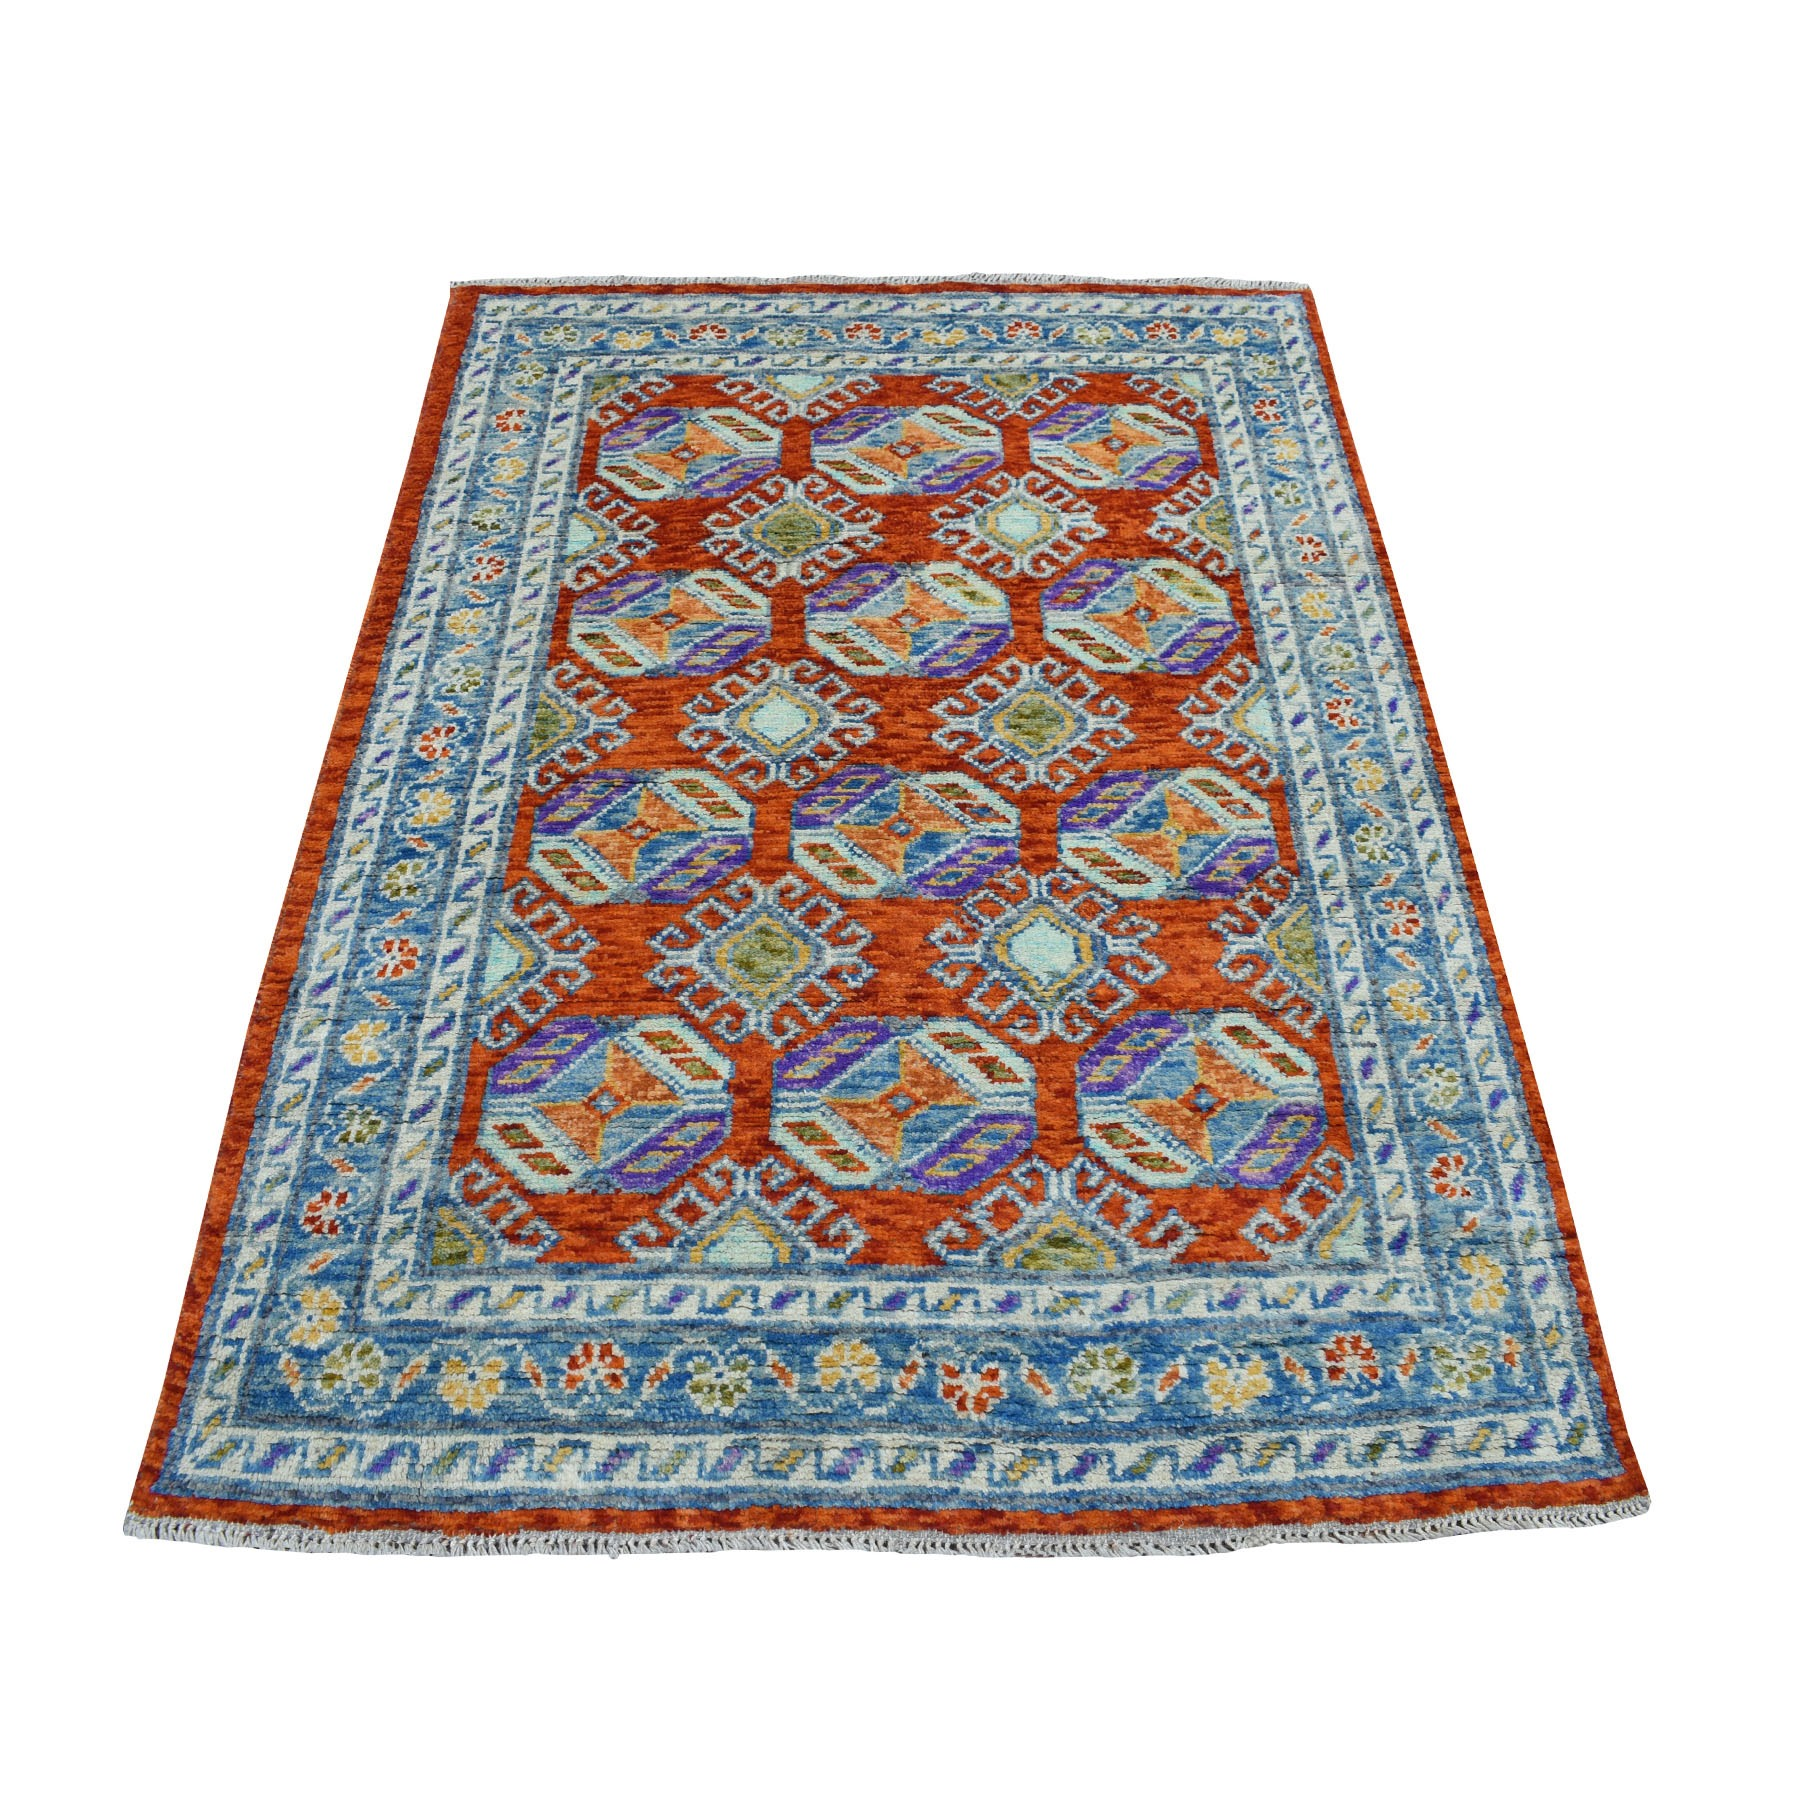 "4'1""x5'9"" Orange Colorful Afghan Baluch Tribal Design Hand Woven Pure Wool Oriental Rug"